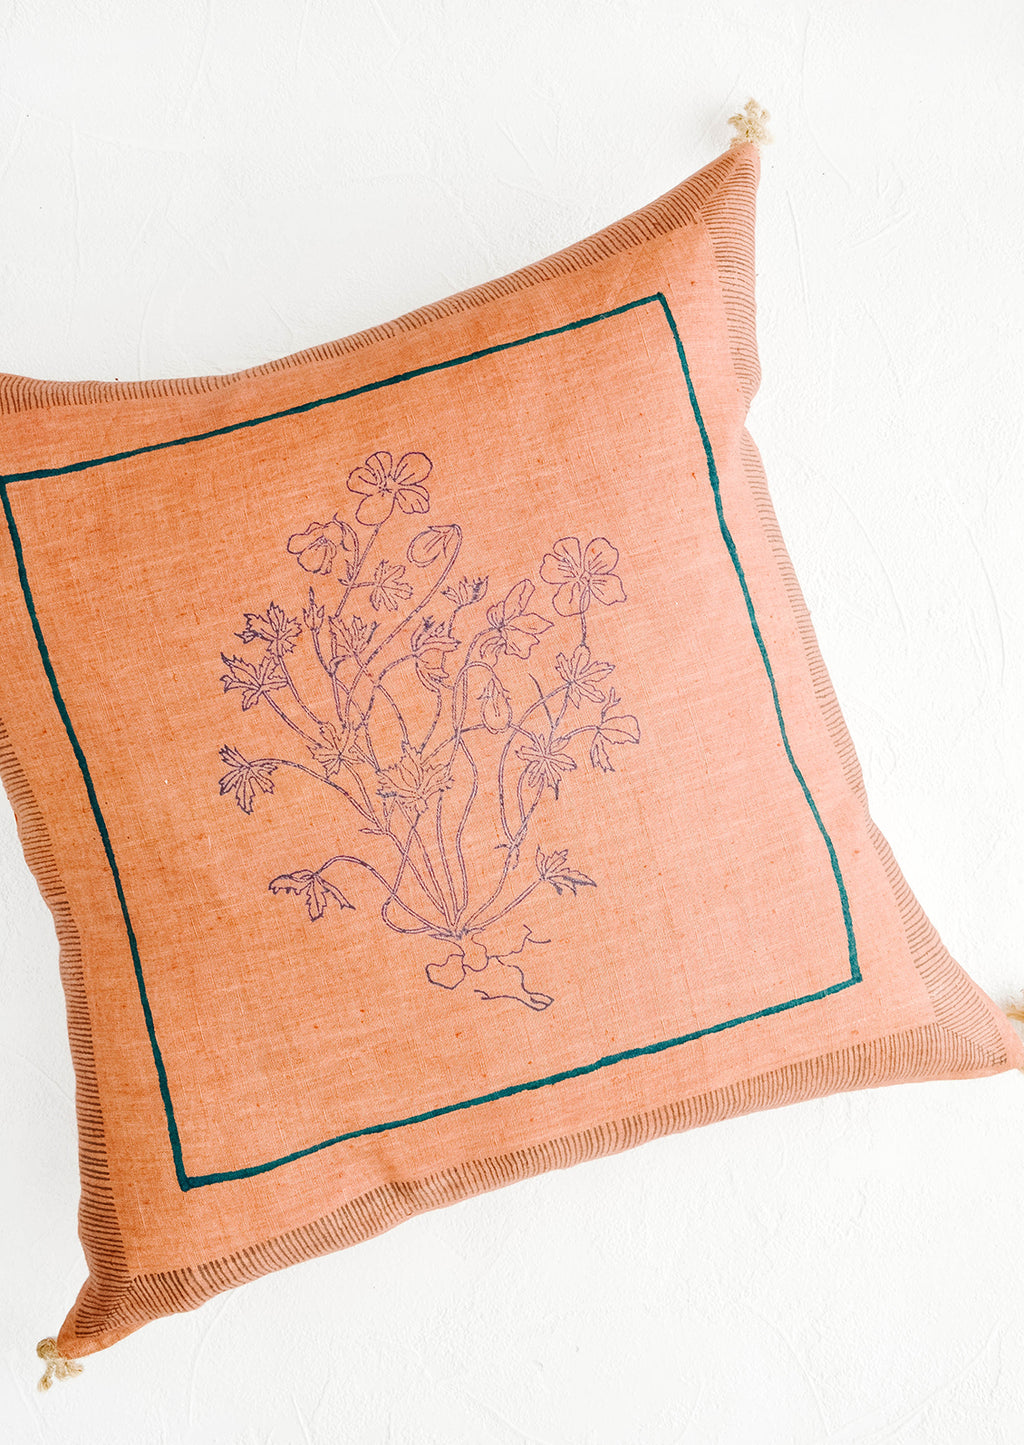 1: Decorative square-shaped throw pillow in clay brown linen with framed, block printed floral print.